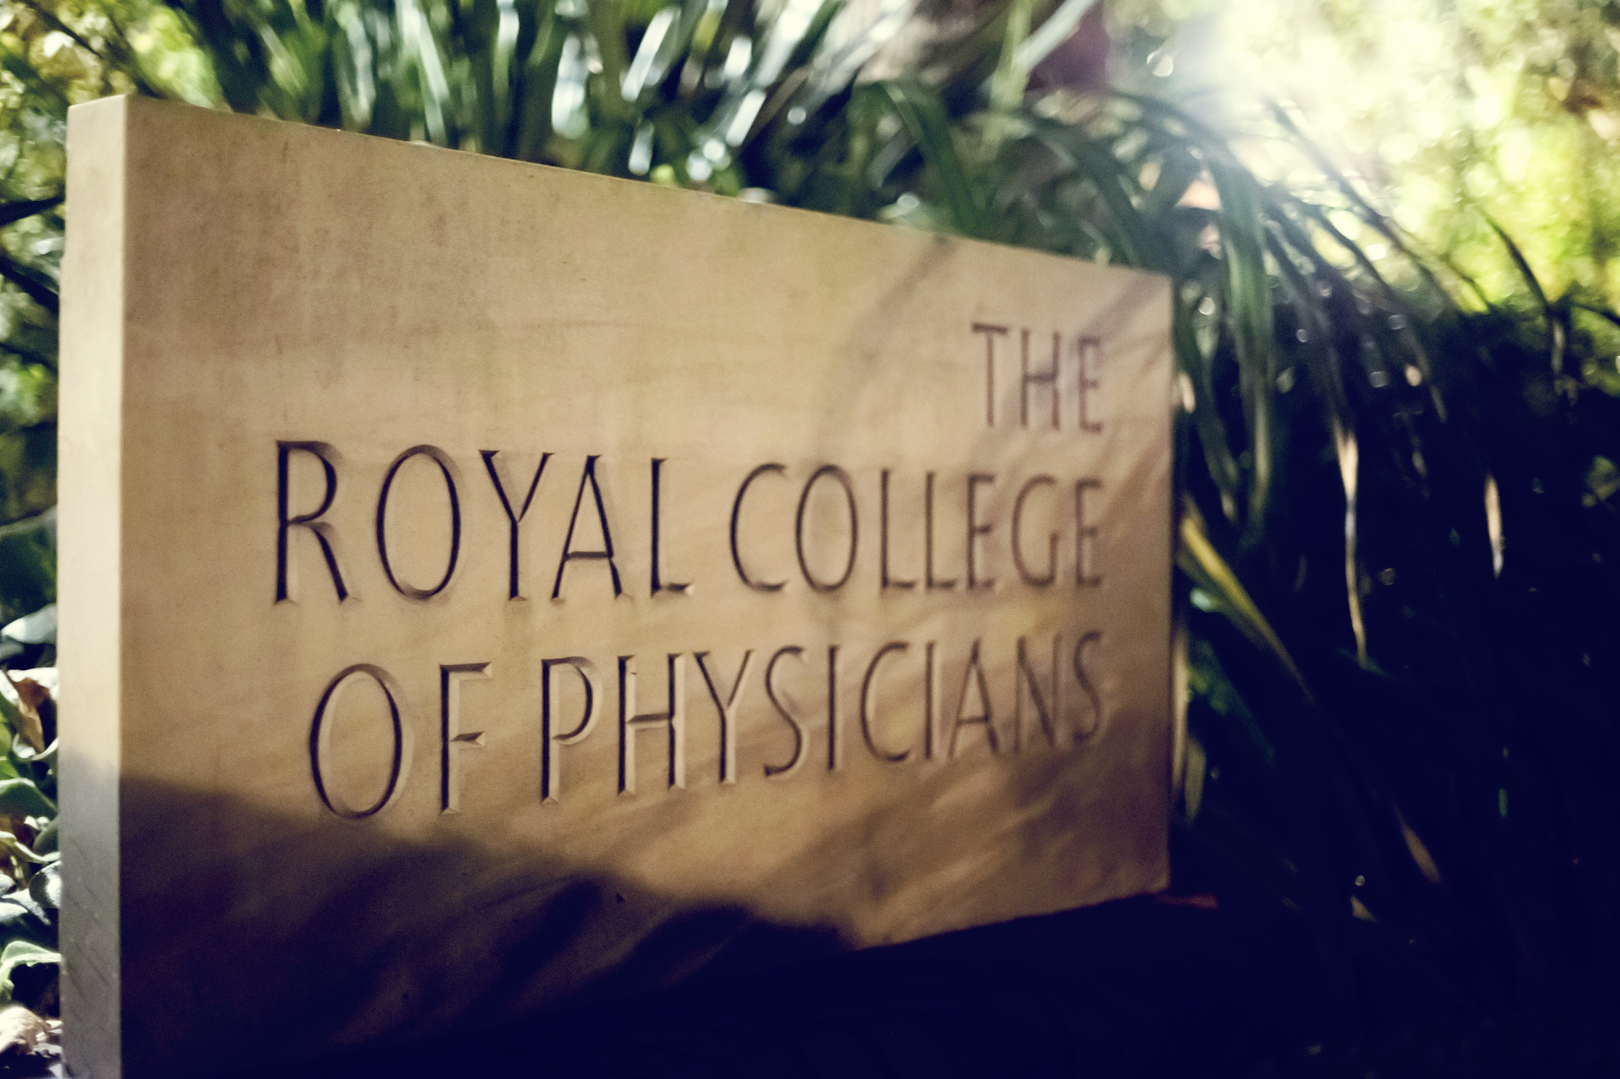 Sign of the Royal College of Physicians